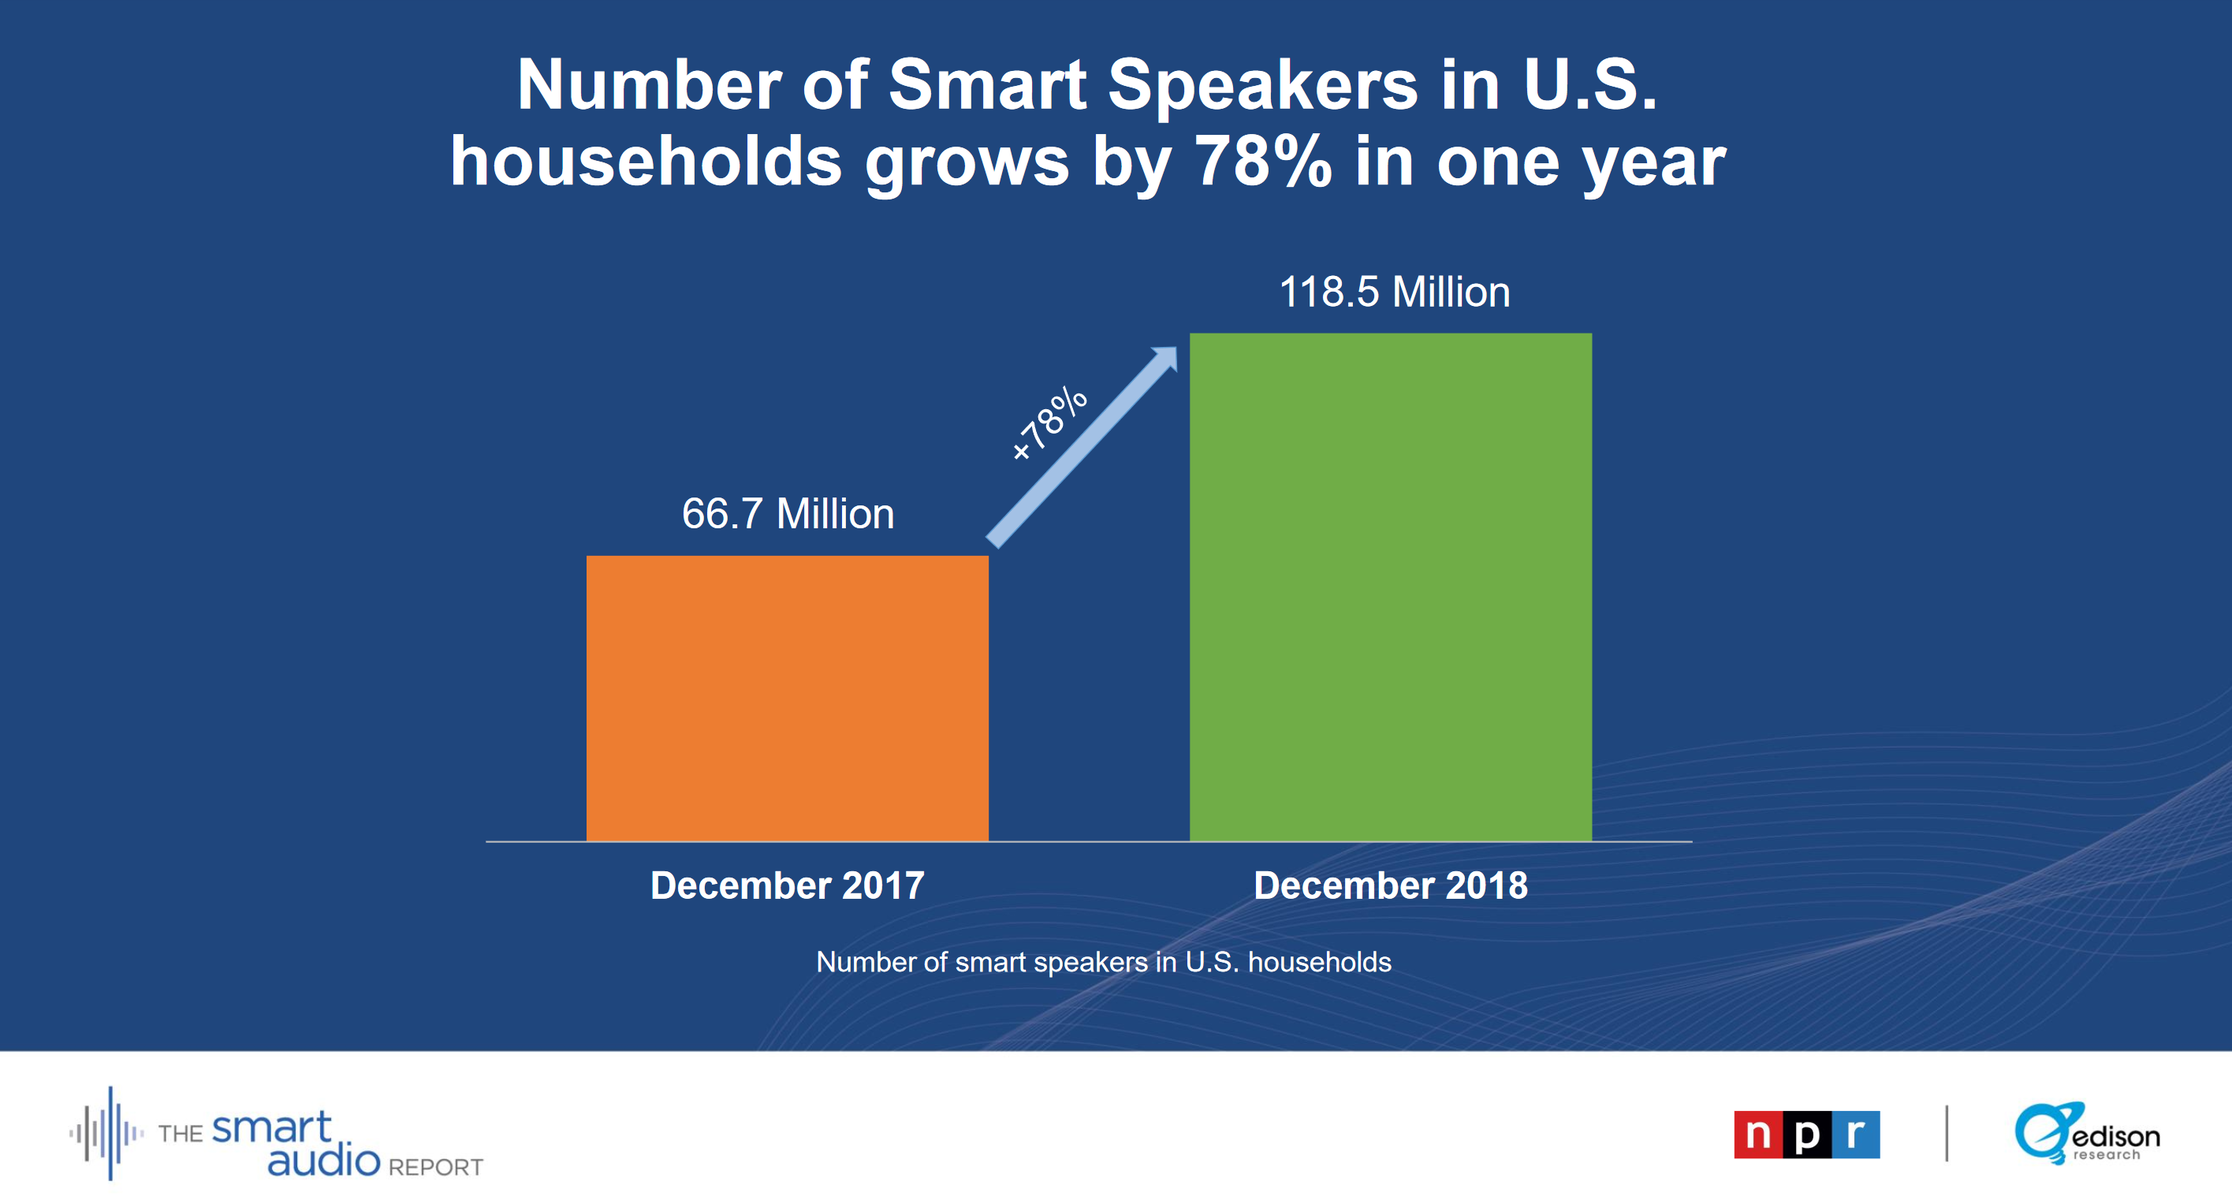 The Smart Audio Report von NPR und Edison Research